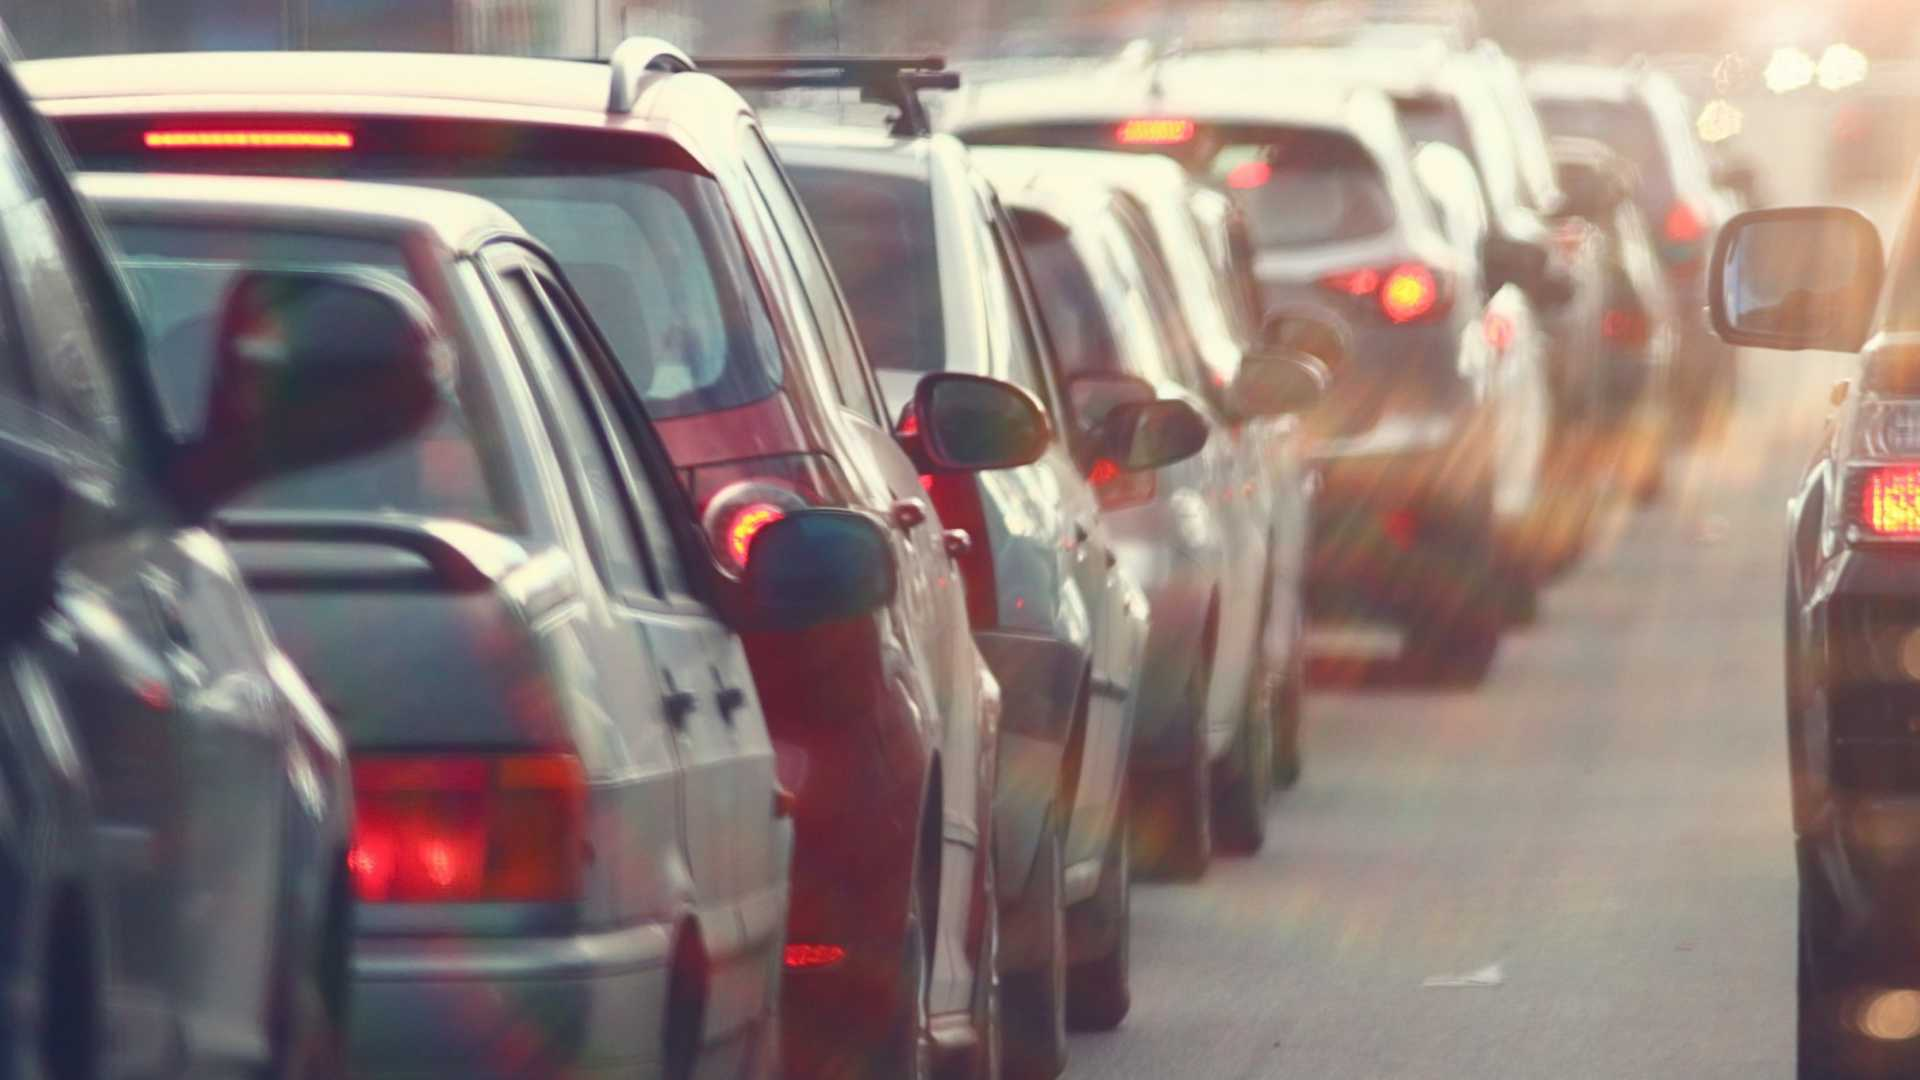 Here Are All 50 States Ranked By How Bad Their Drivers Are, According to an Insurance Site